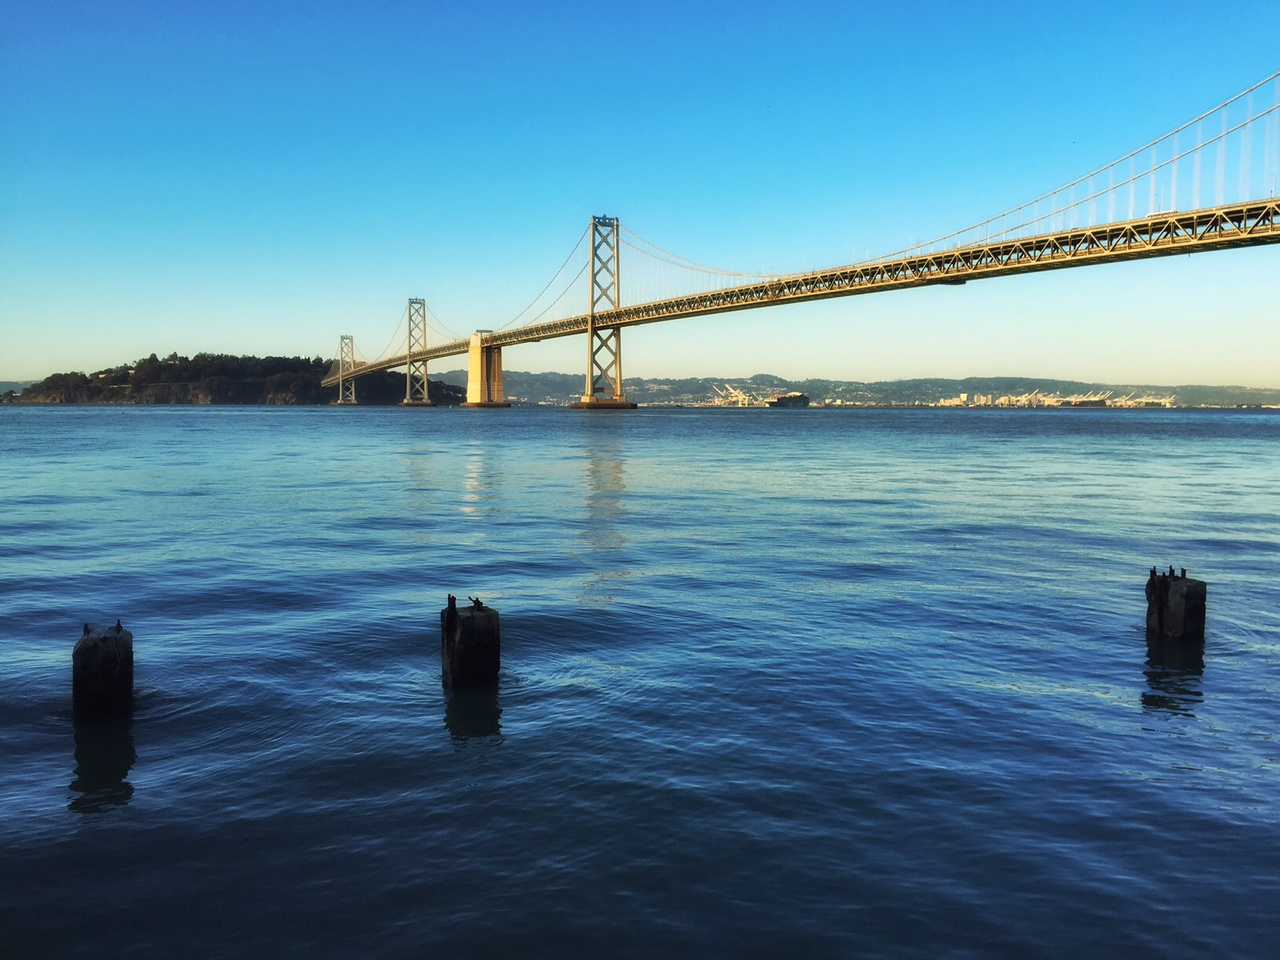 This is the Bay Bridge, which I love to shoot!